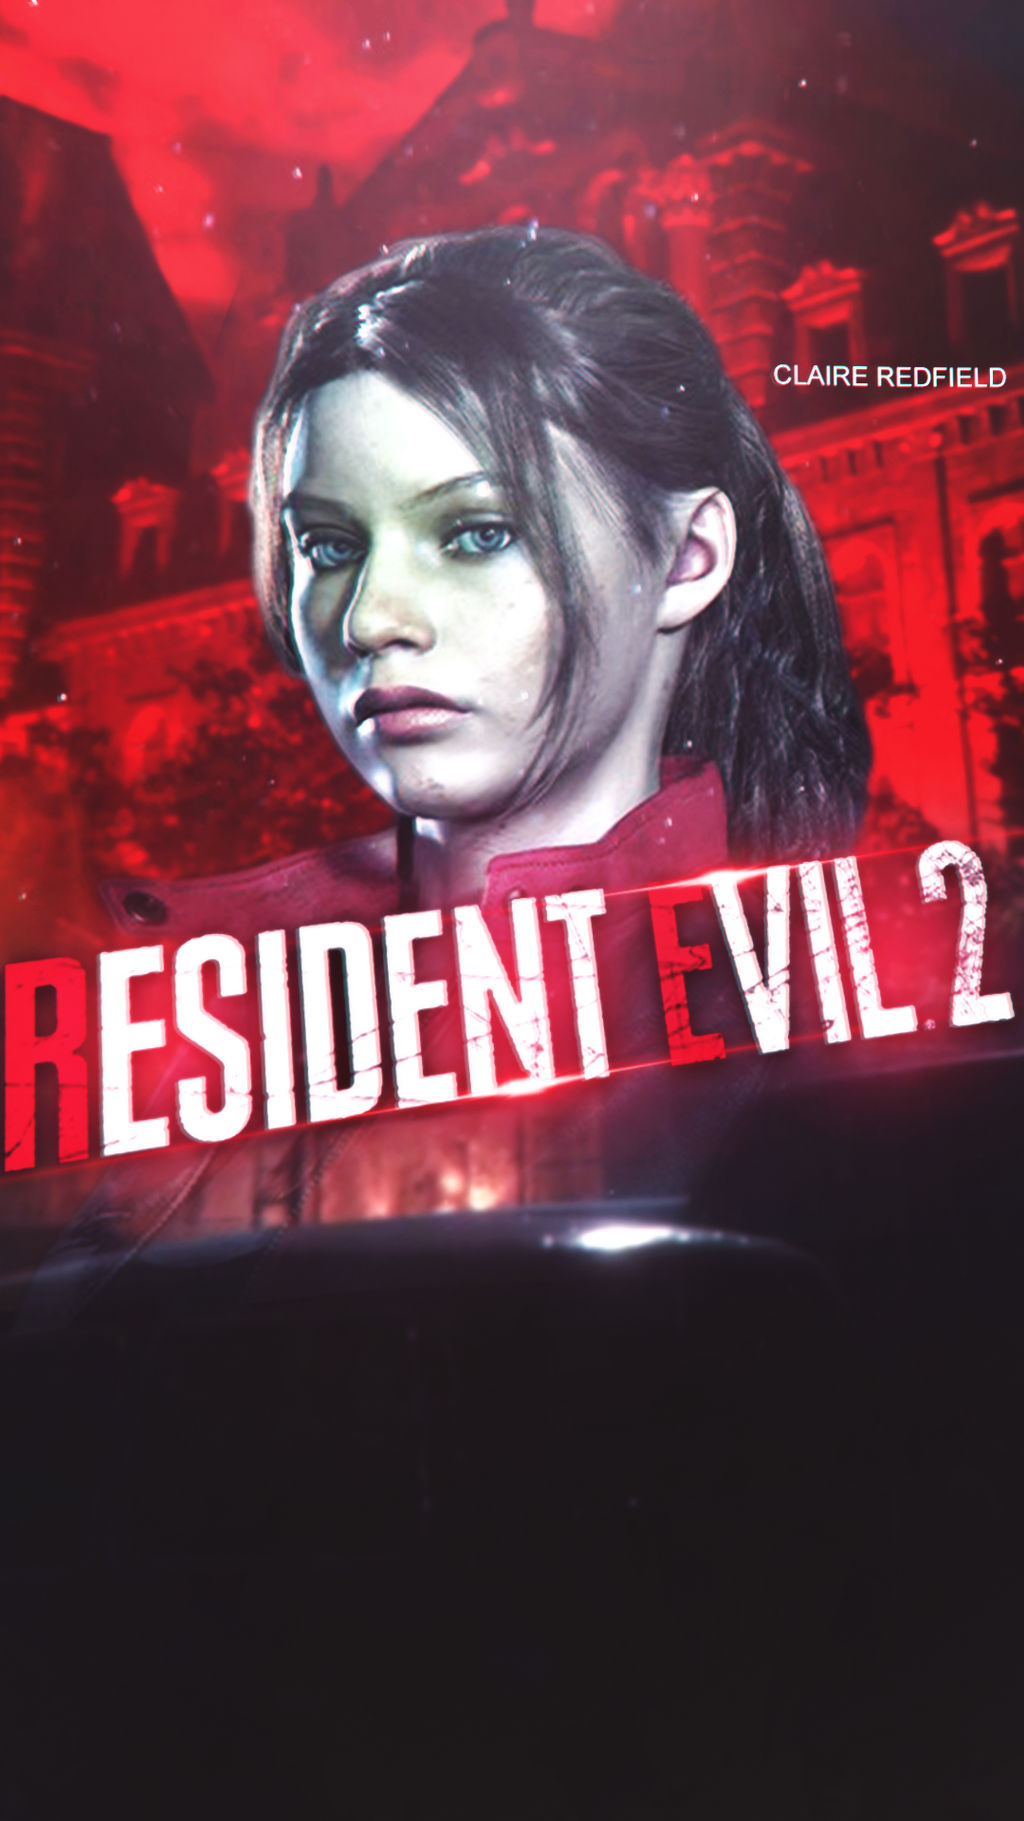 Claire Redfield Resident Evil 2 Remake Wallpaper By